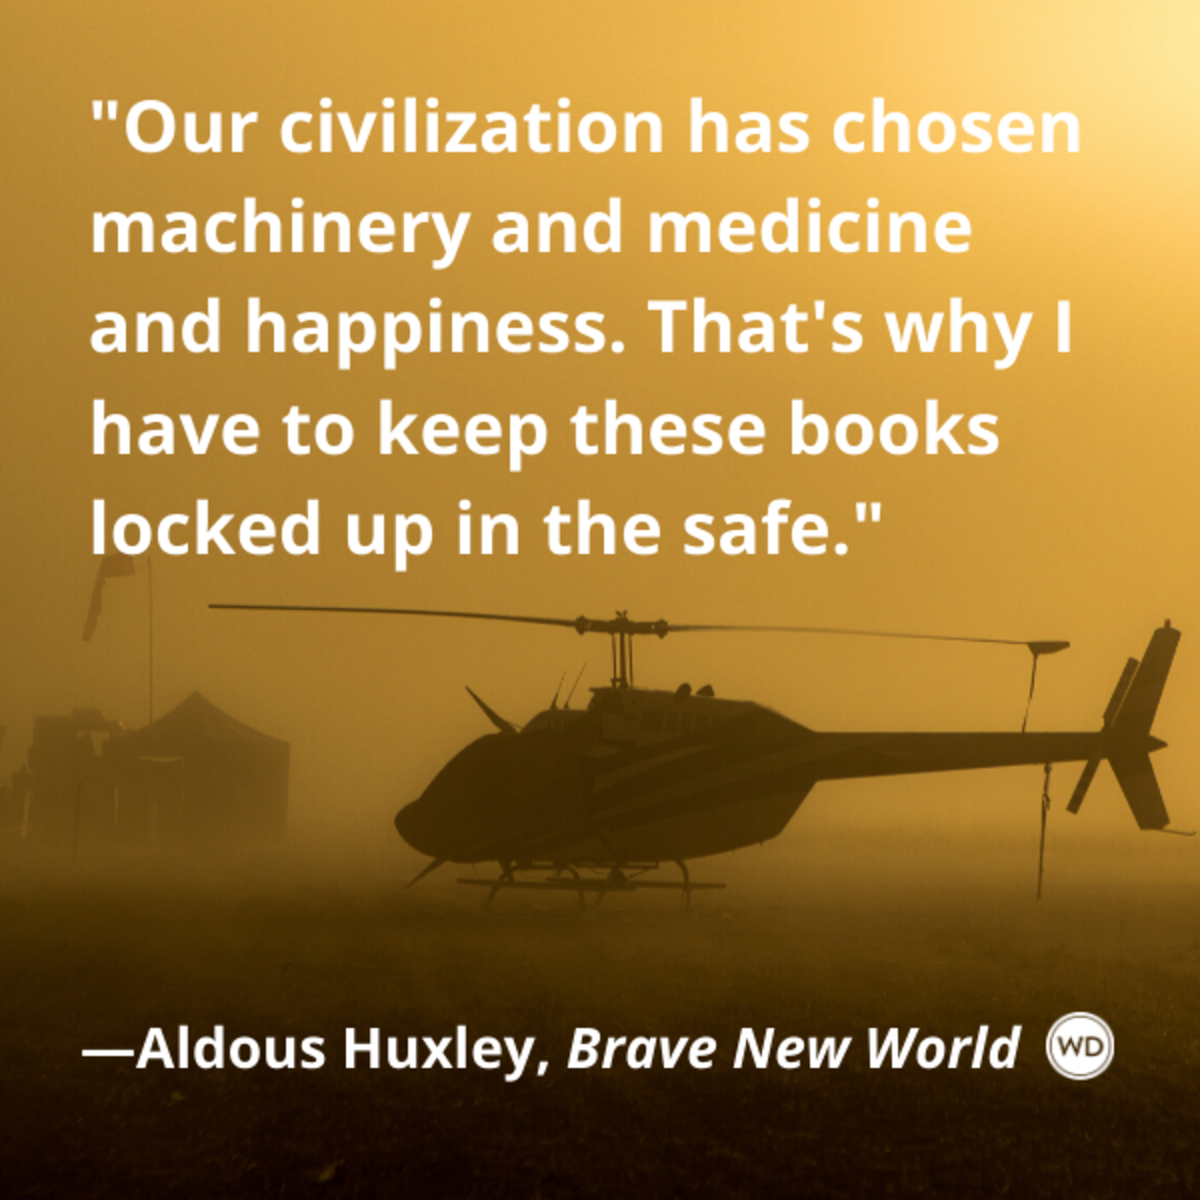 aldous_huxley_brave_new_world_quotes_our_civilization_has_chosen_machinery_and_medicine_and_happiness